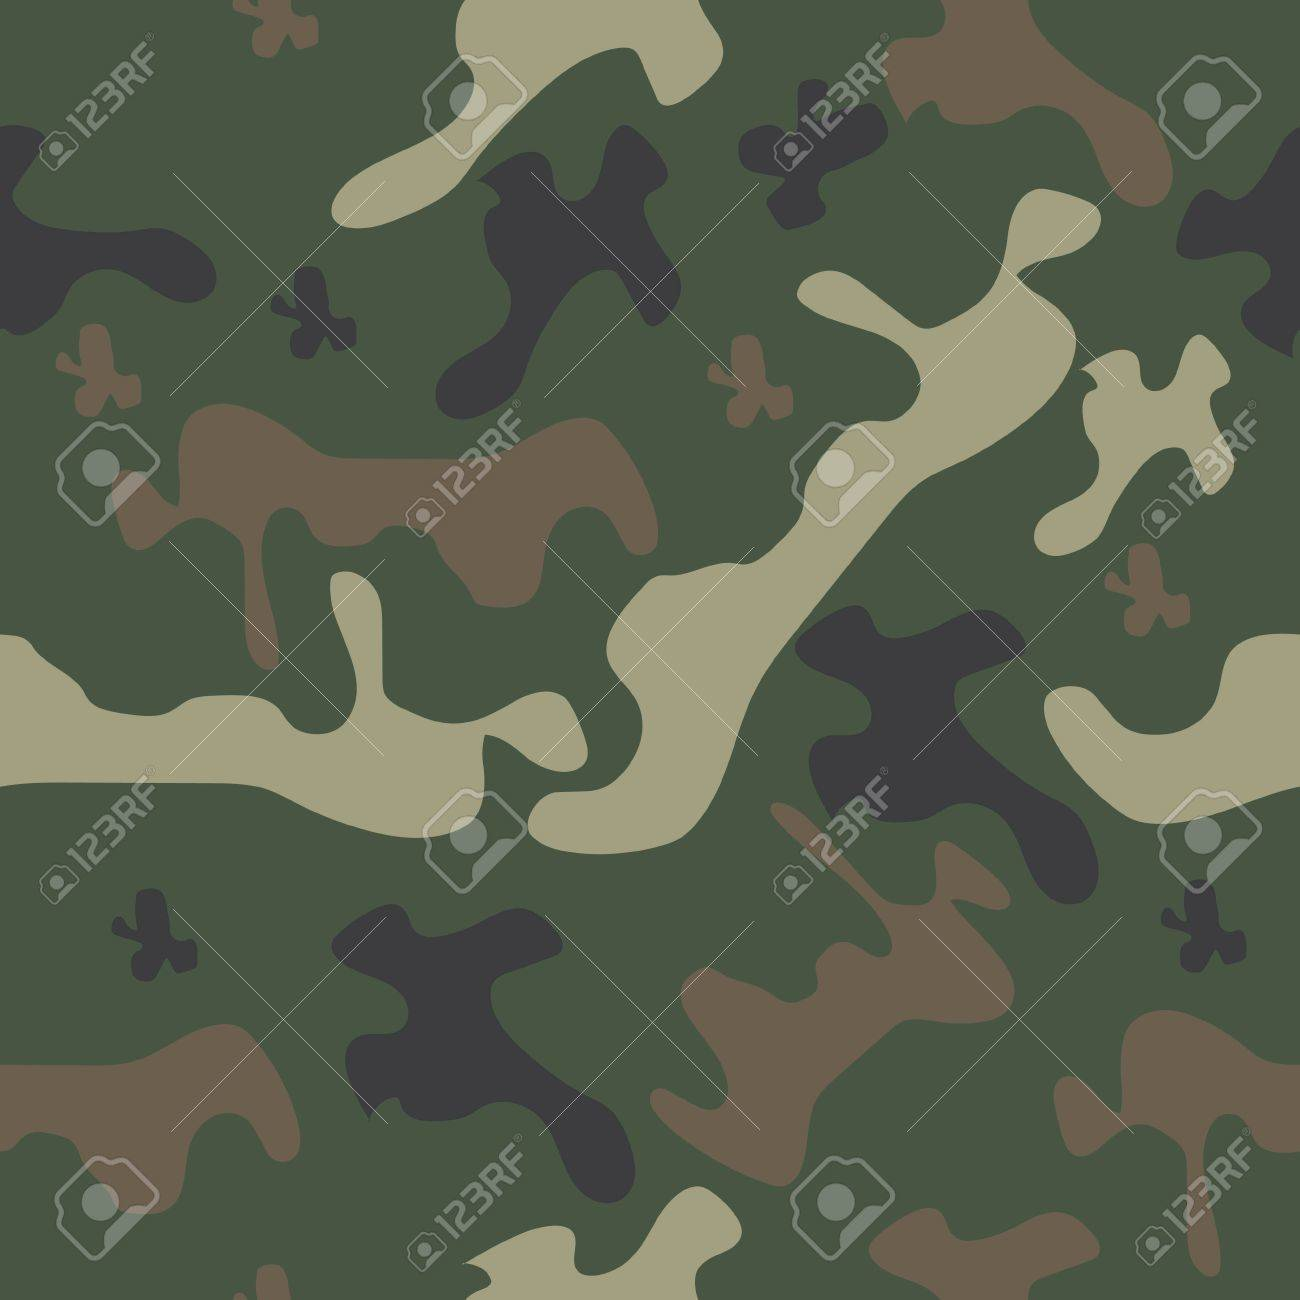 Camouflage Pattern Background Seamless Vector Illustration 1300x1300